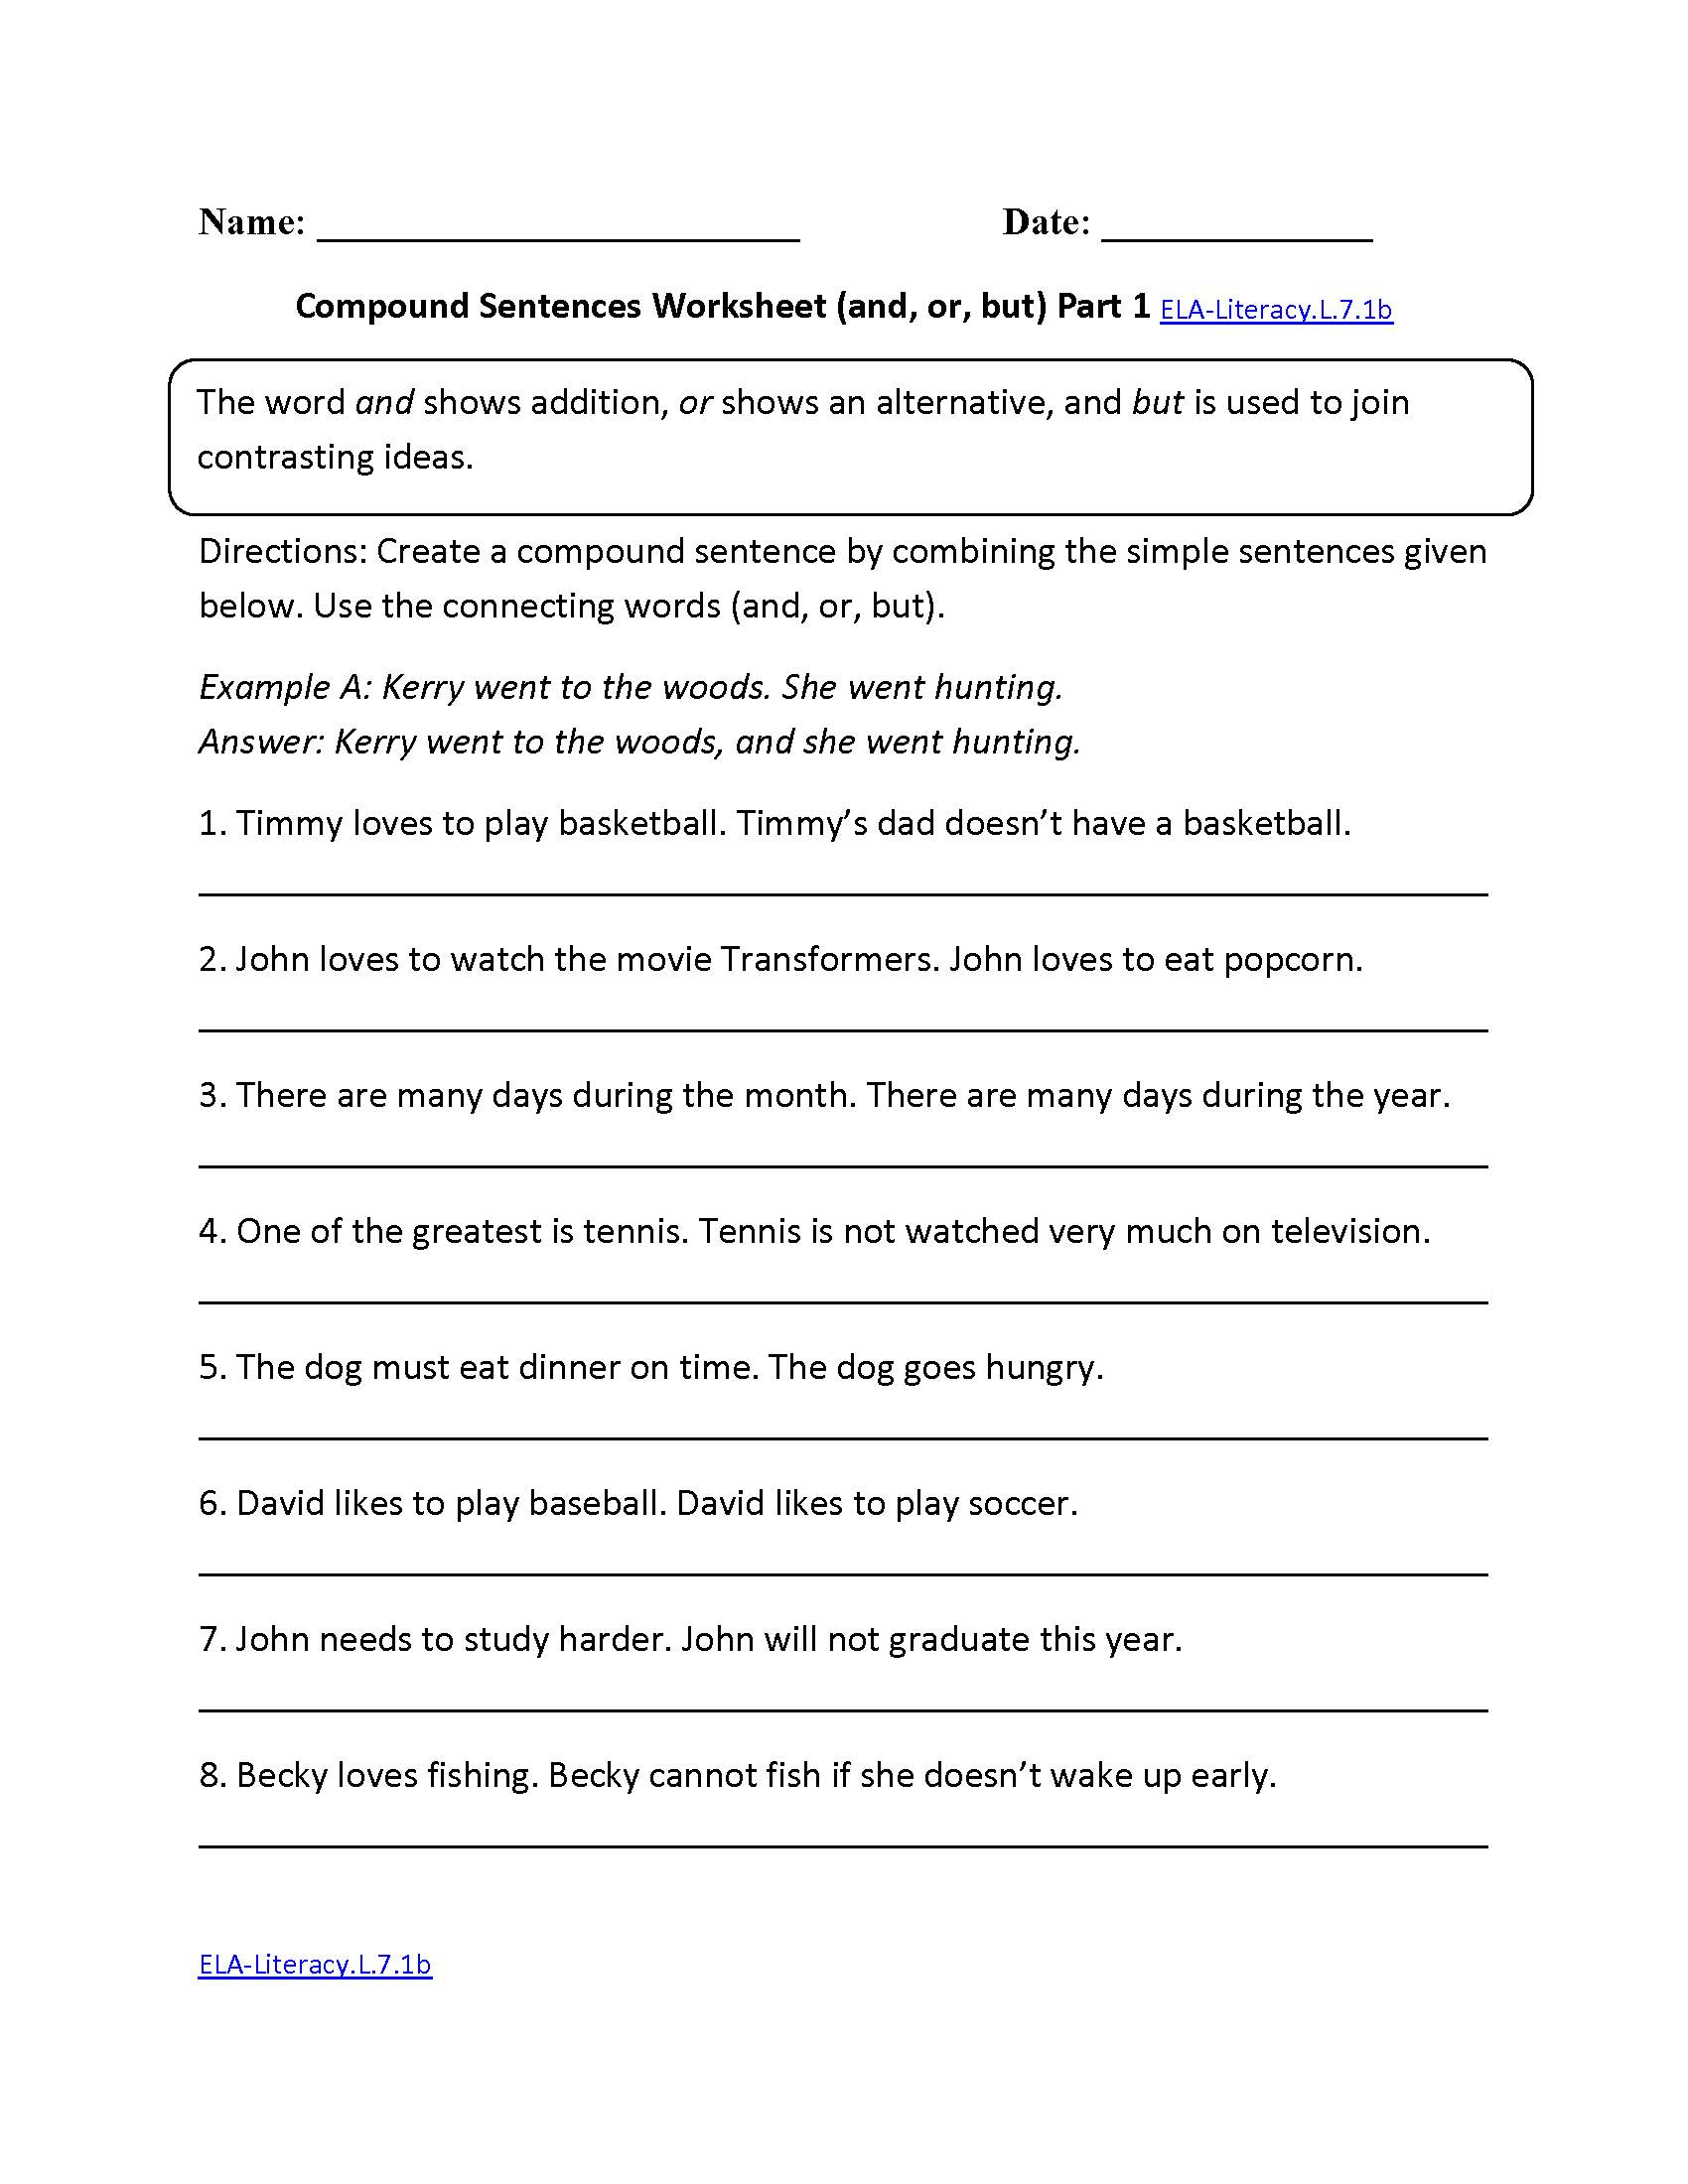 Compound Sentences Worksheet ELA-Literacy.L.7.1b Language Worksheet ...